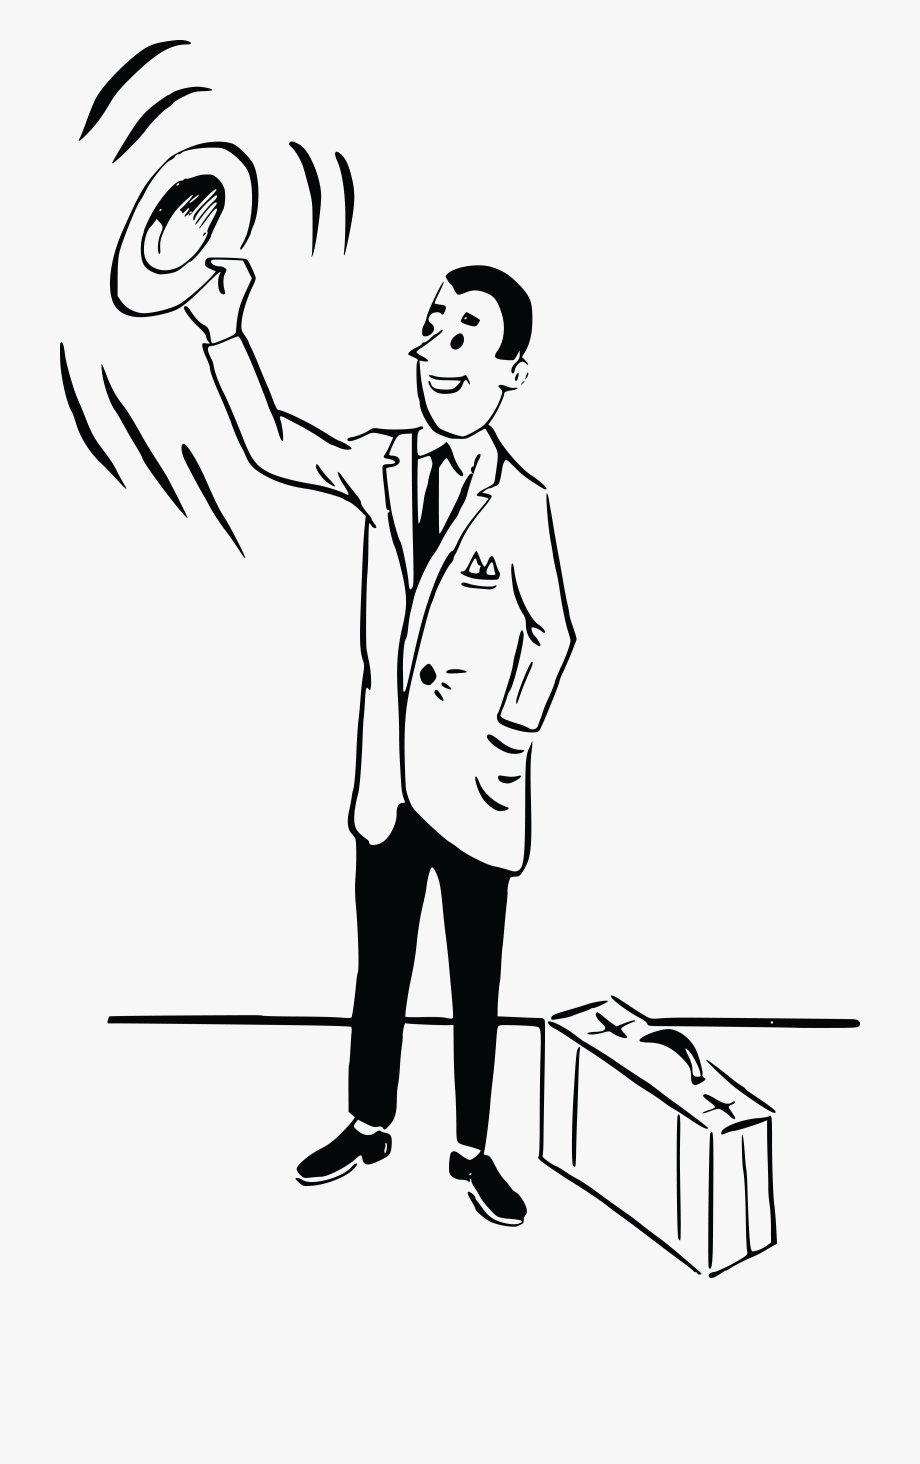 People waving goodbye clipart image stock Free Clipart Of A Black And White Retro Man Waving - Man Waving ... image stock